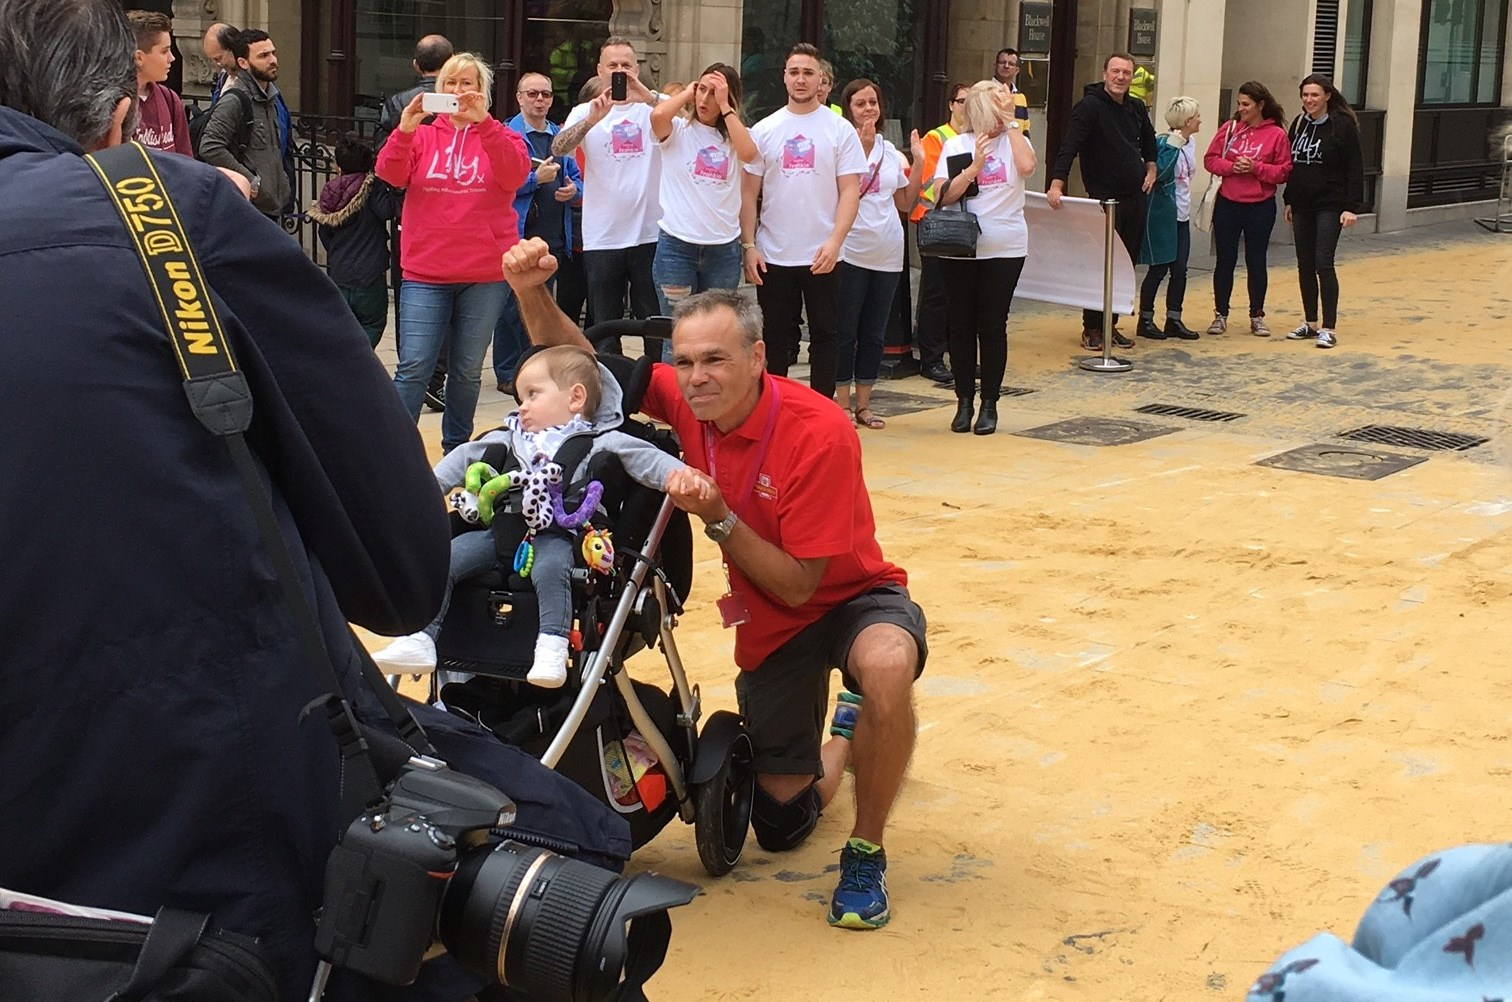 Postman Mark Penfold finishing his 500-mile walk